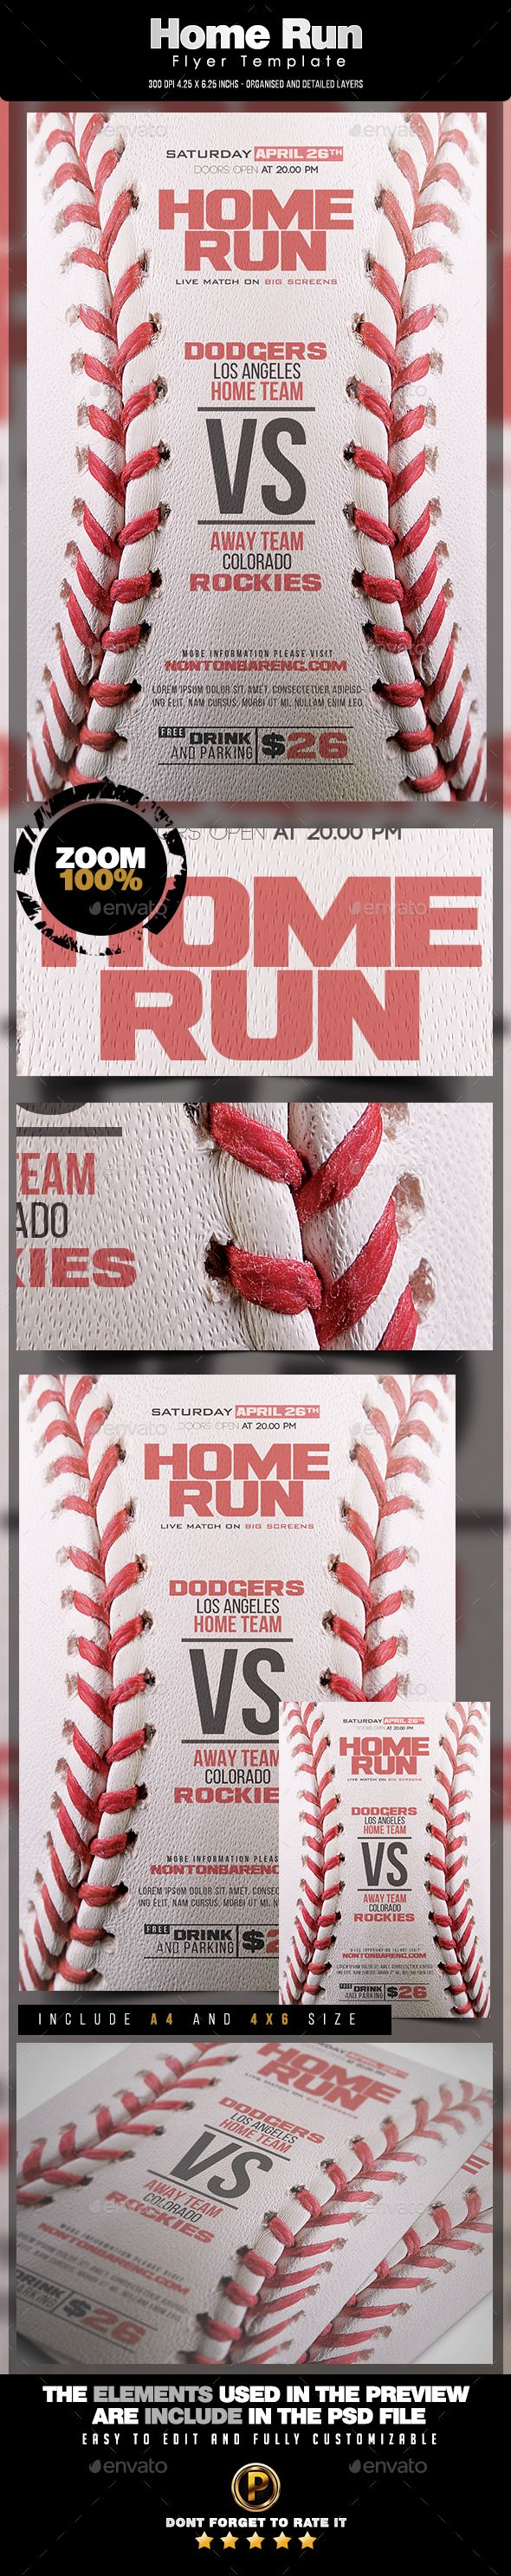 Home Run Flyer Template PSD. Download here: http://graphicriver.net/item/home-run-flyer-template/15787953?ref=ksioks